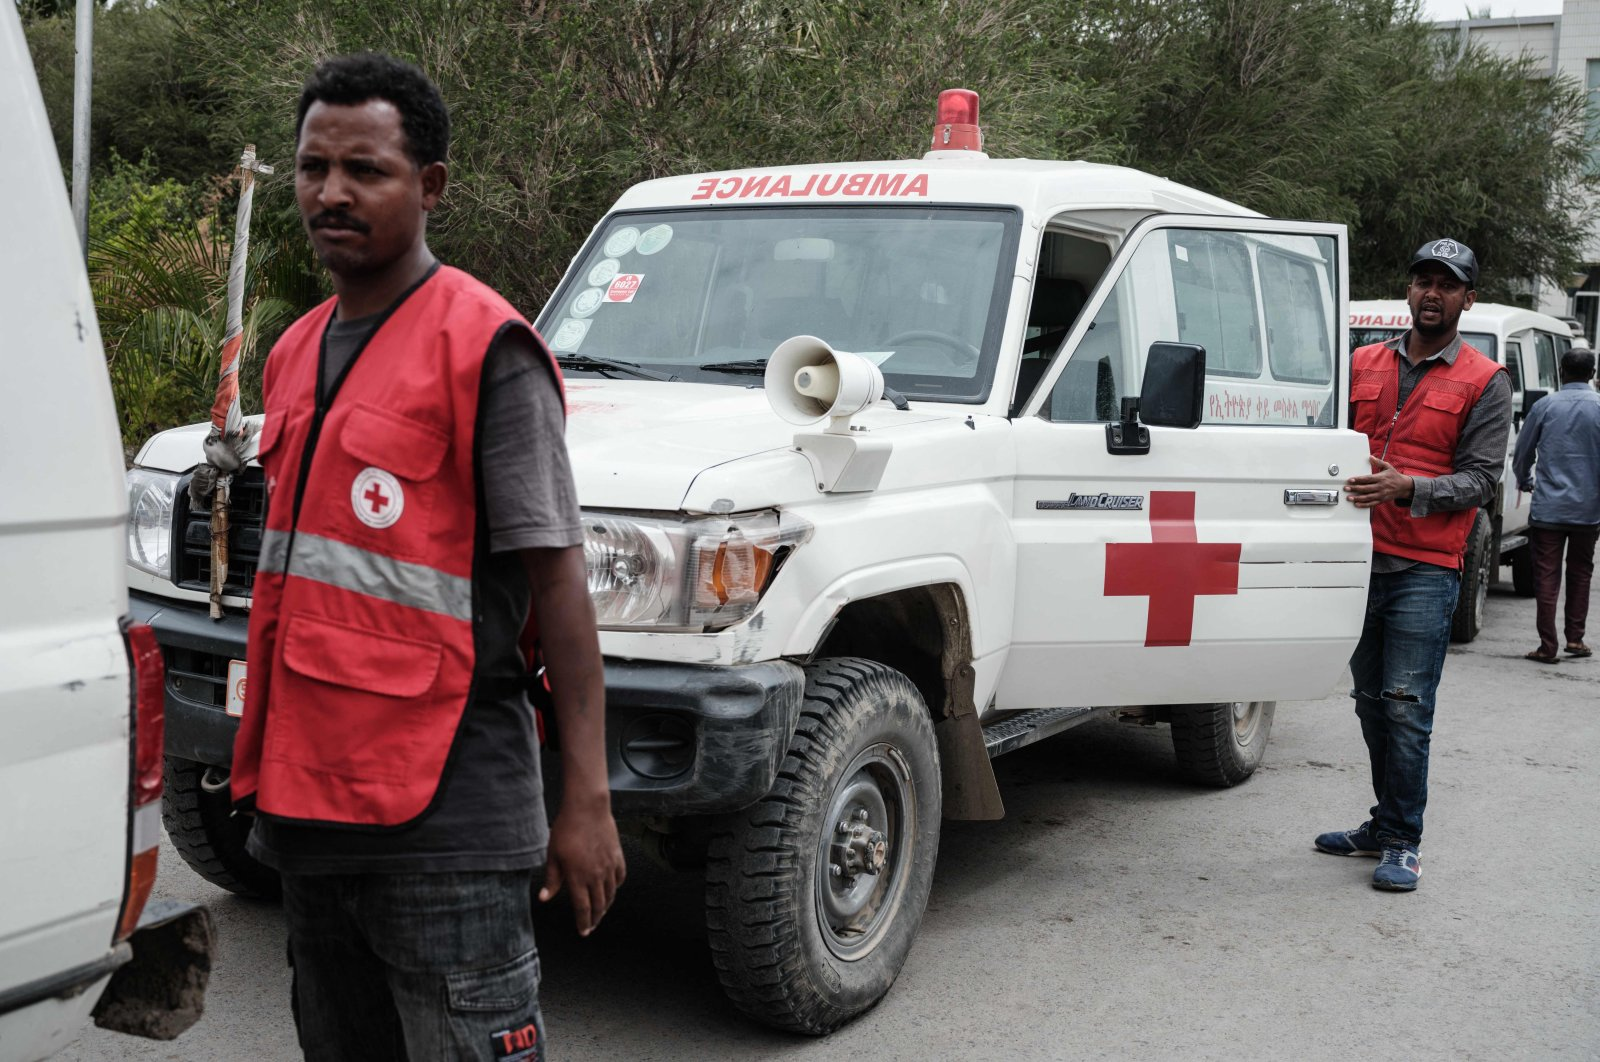 Relatives of Togoga residents, a village about 20km west of Mekele, where an alleged airstrike hit a market leaving an unknown number of casualties, wait for information as Red Cross ambulances are standing by after being denied access to the site, at the Ayder referral hospital in Mekele, Ethiopia, June 23, 2021. (AFP Photo)